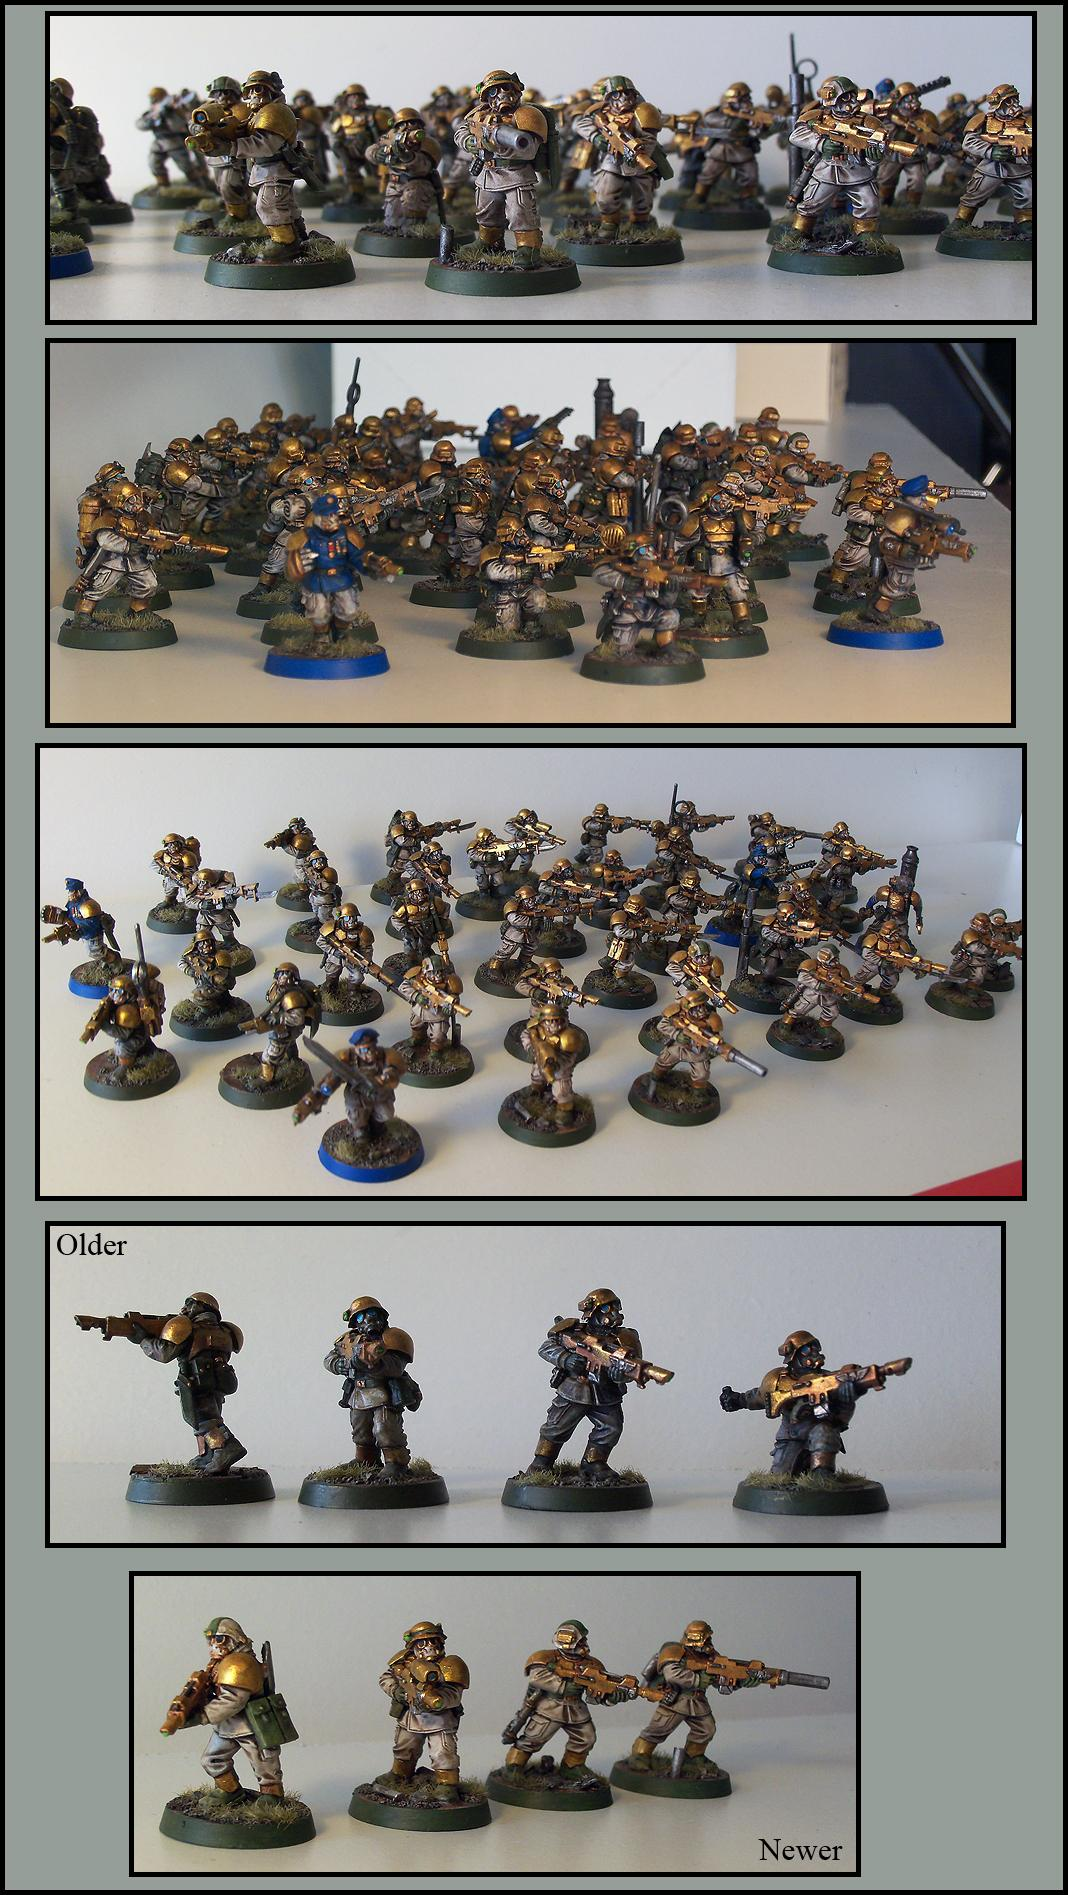 403171-Cadians%2C%20Imperial%20Guard%2C%20Pig%20Iron.jpg